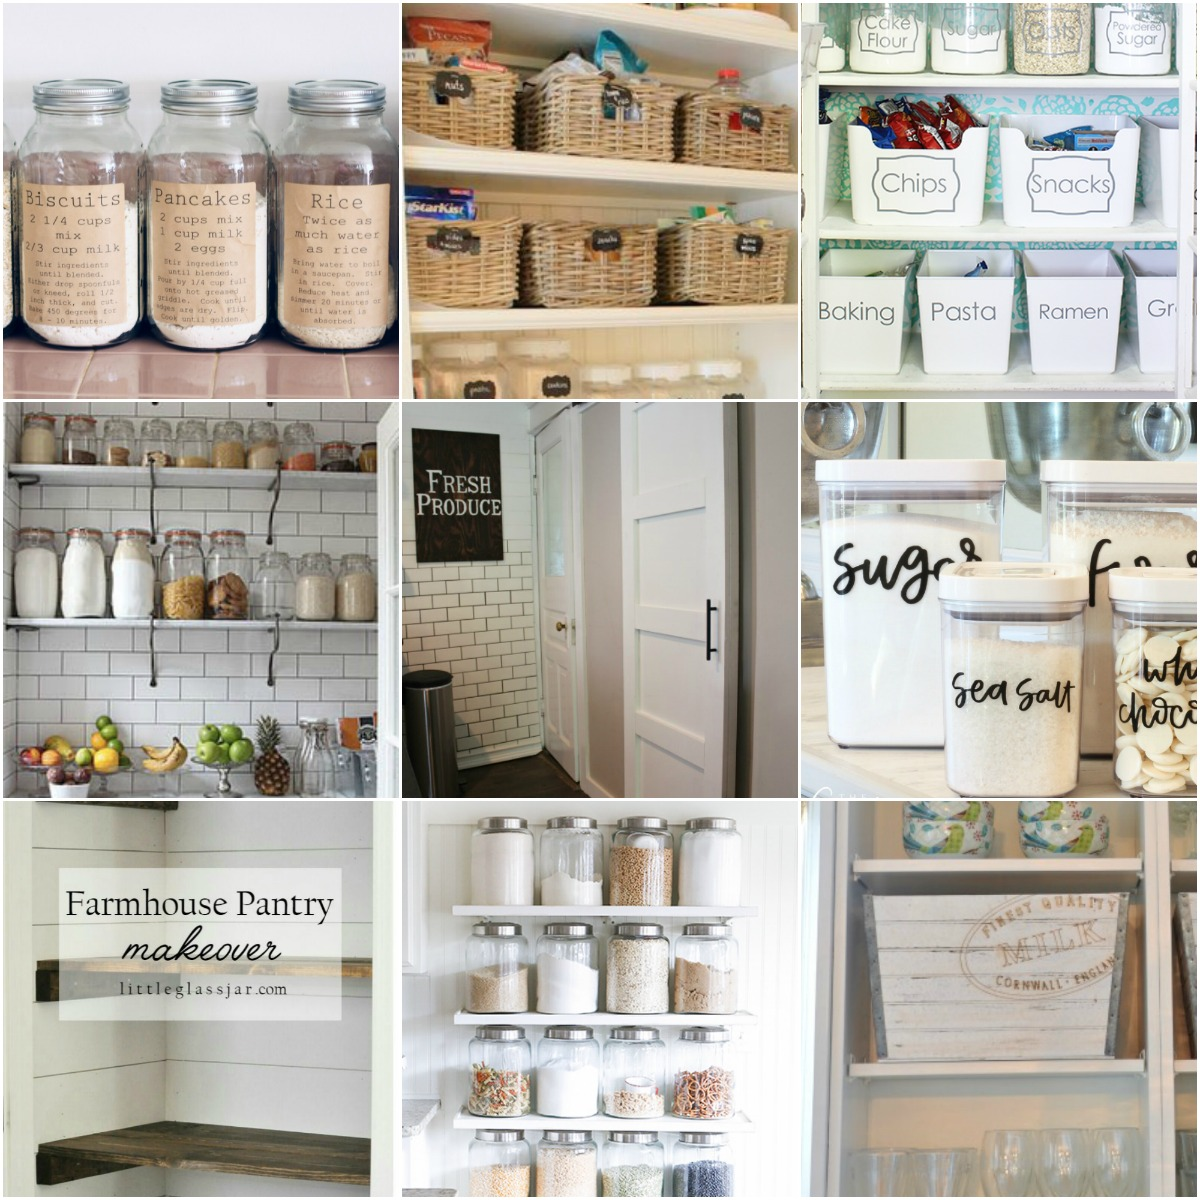 Organized Pantry And Pantry Tips: 5 Tips For A Gorgeous And Organized Pantry